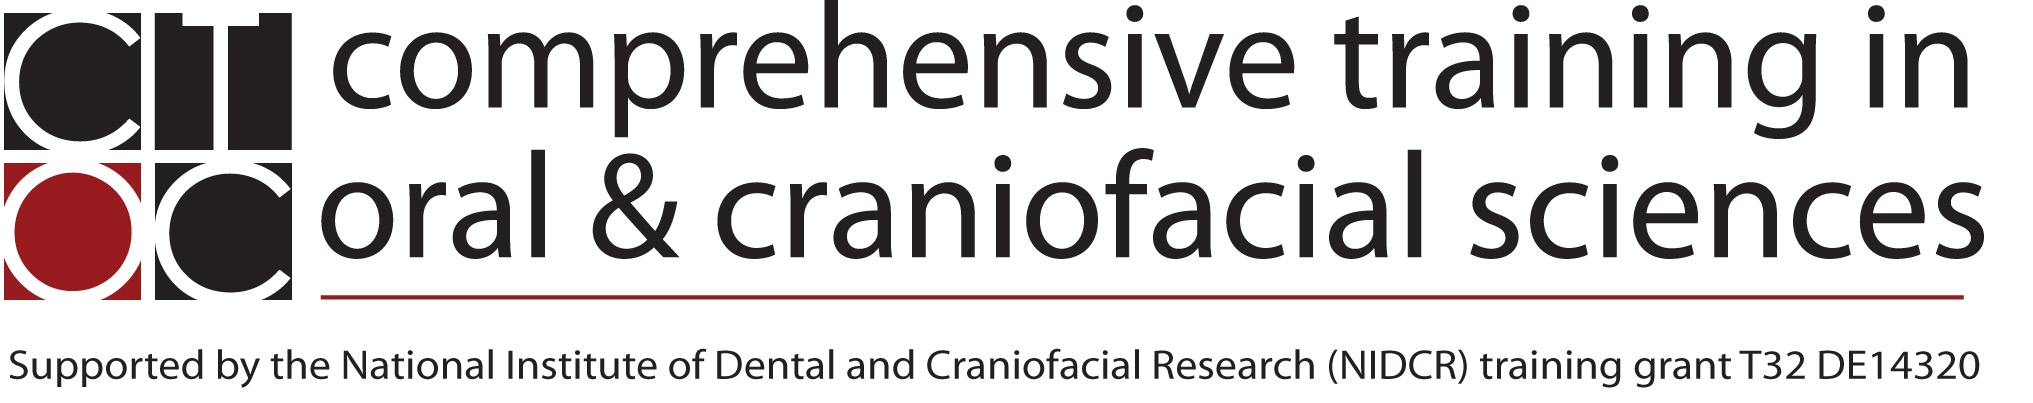 Comprehensive Training in Oral and Craniofacial Sciences